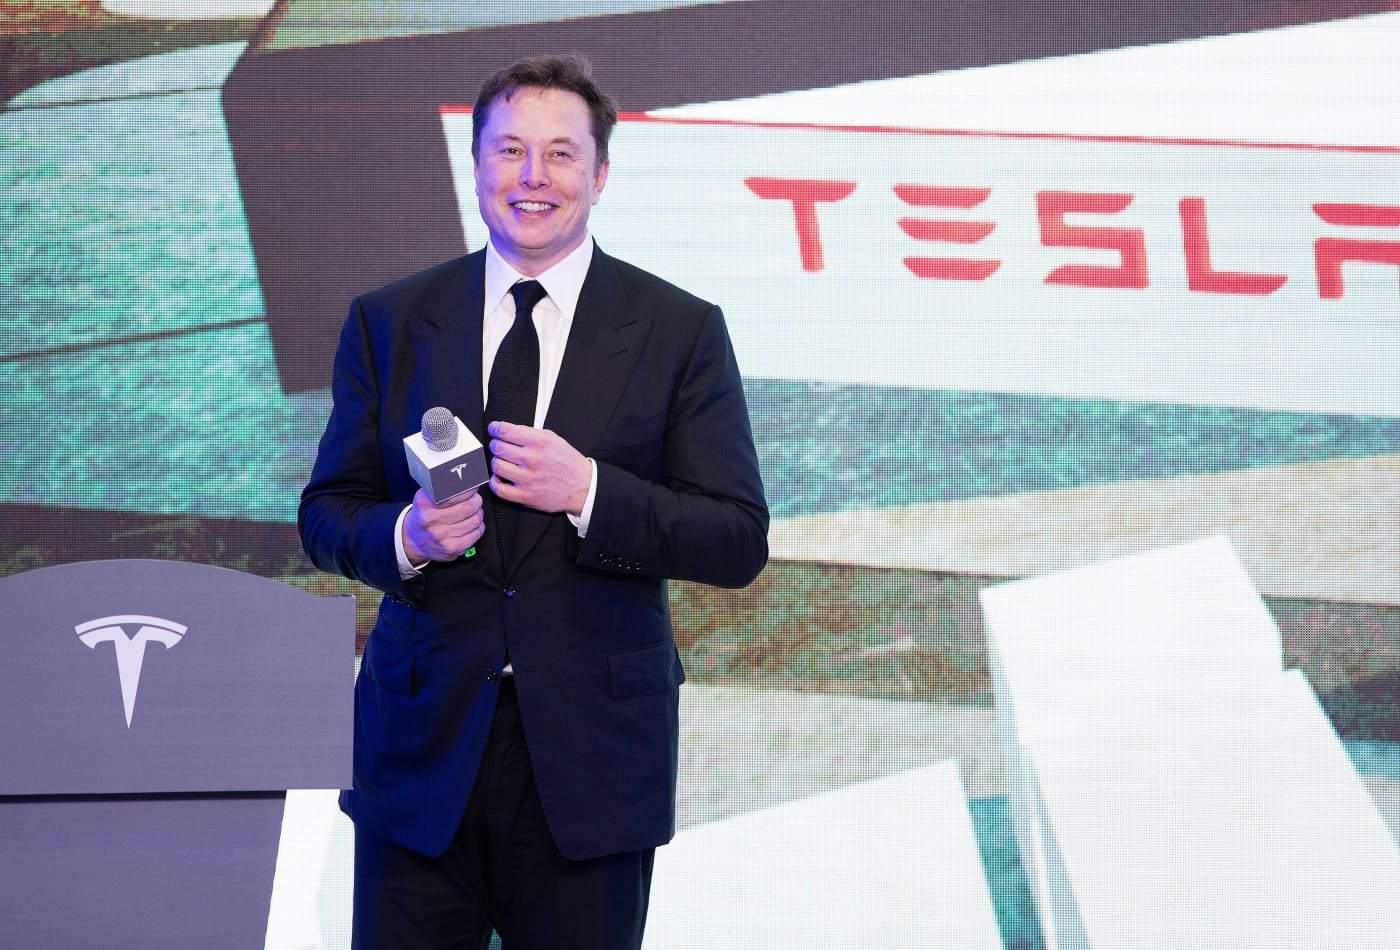 Elon Musk: Tesla Won't Accept Bitcoin For Payment Over Climate Concerns